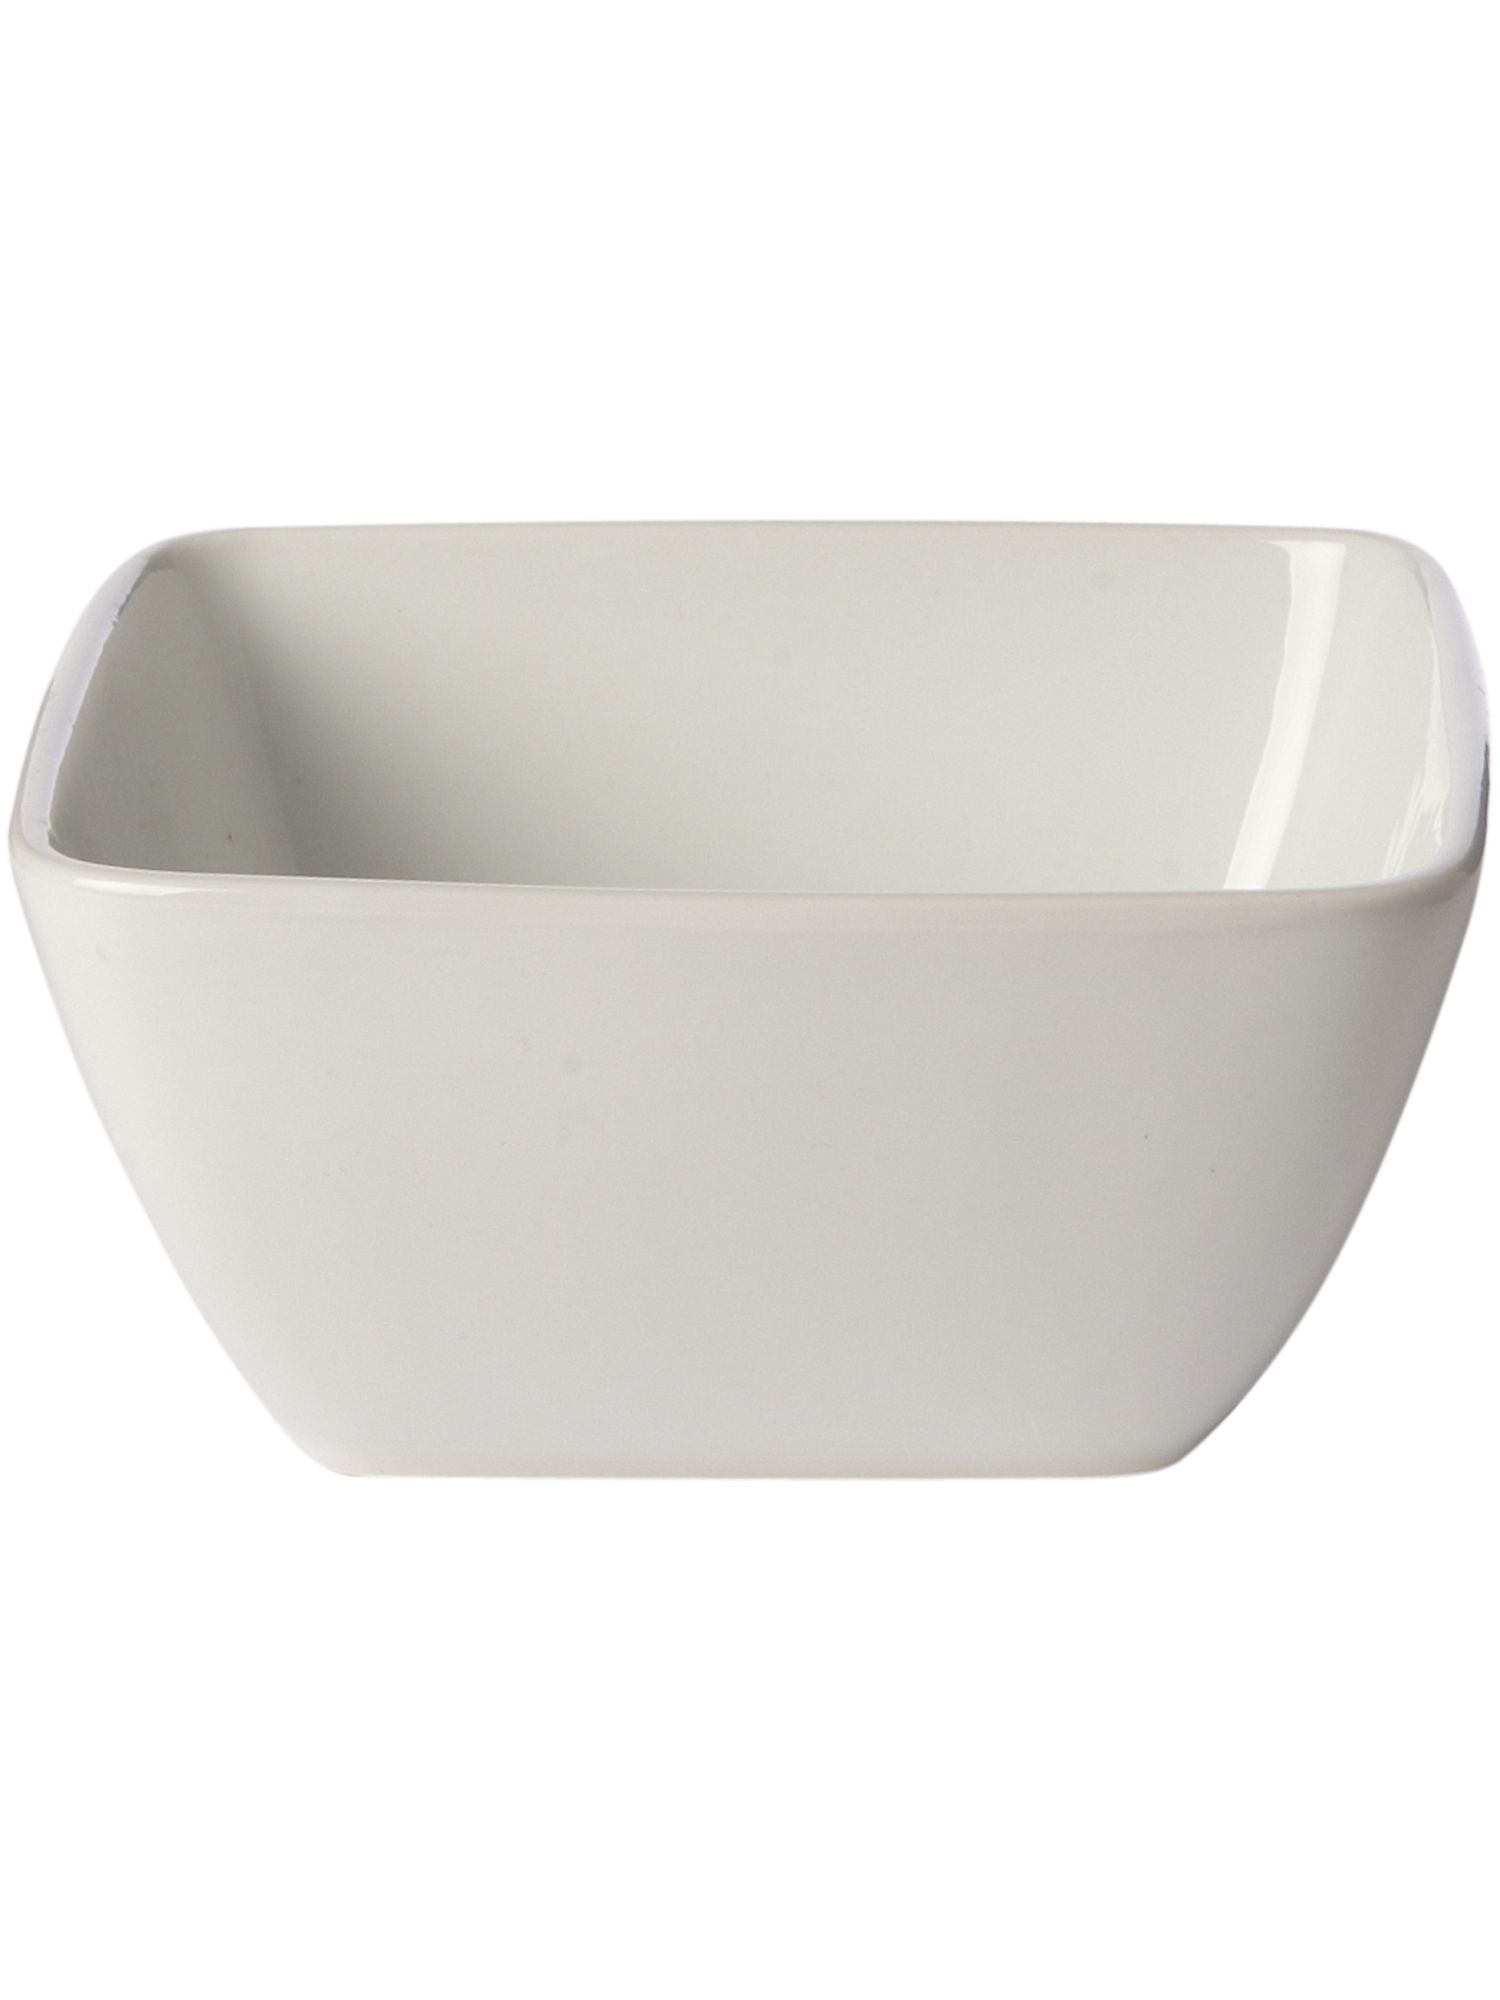 Beau square cereal bowl